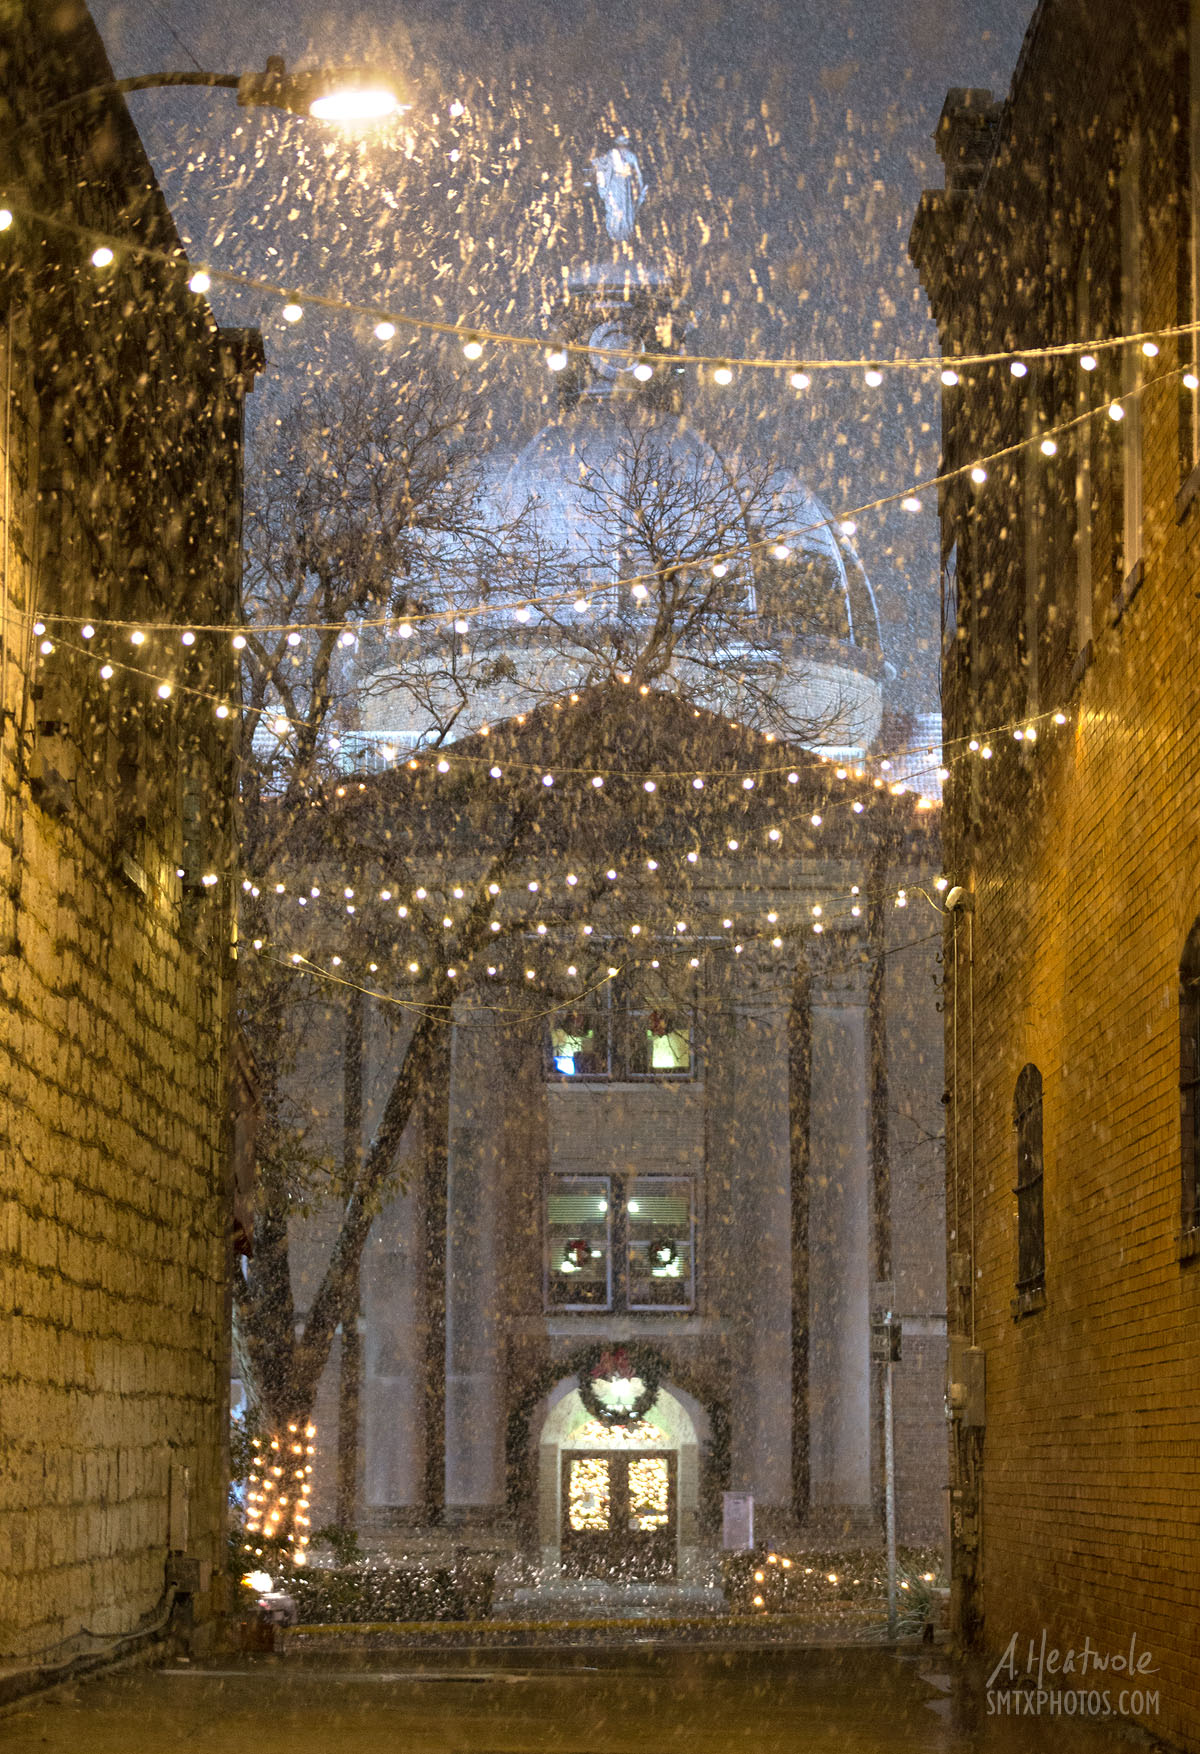 Snowfall in The Kissing Alley